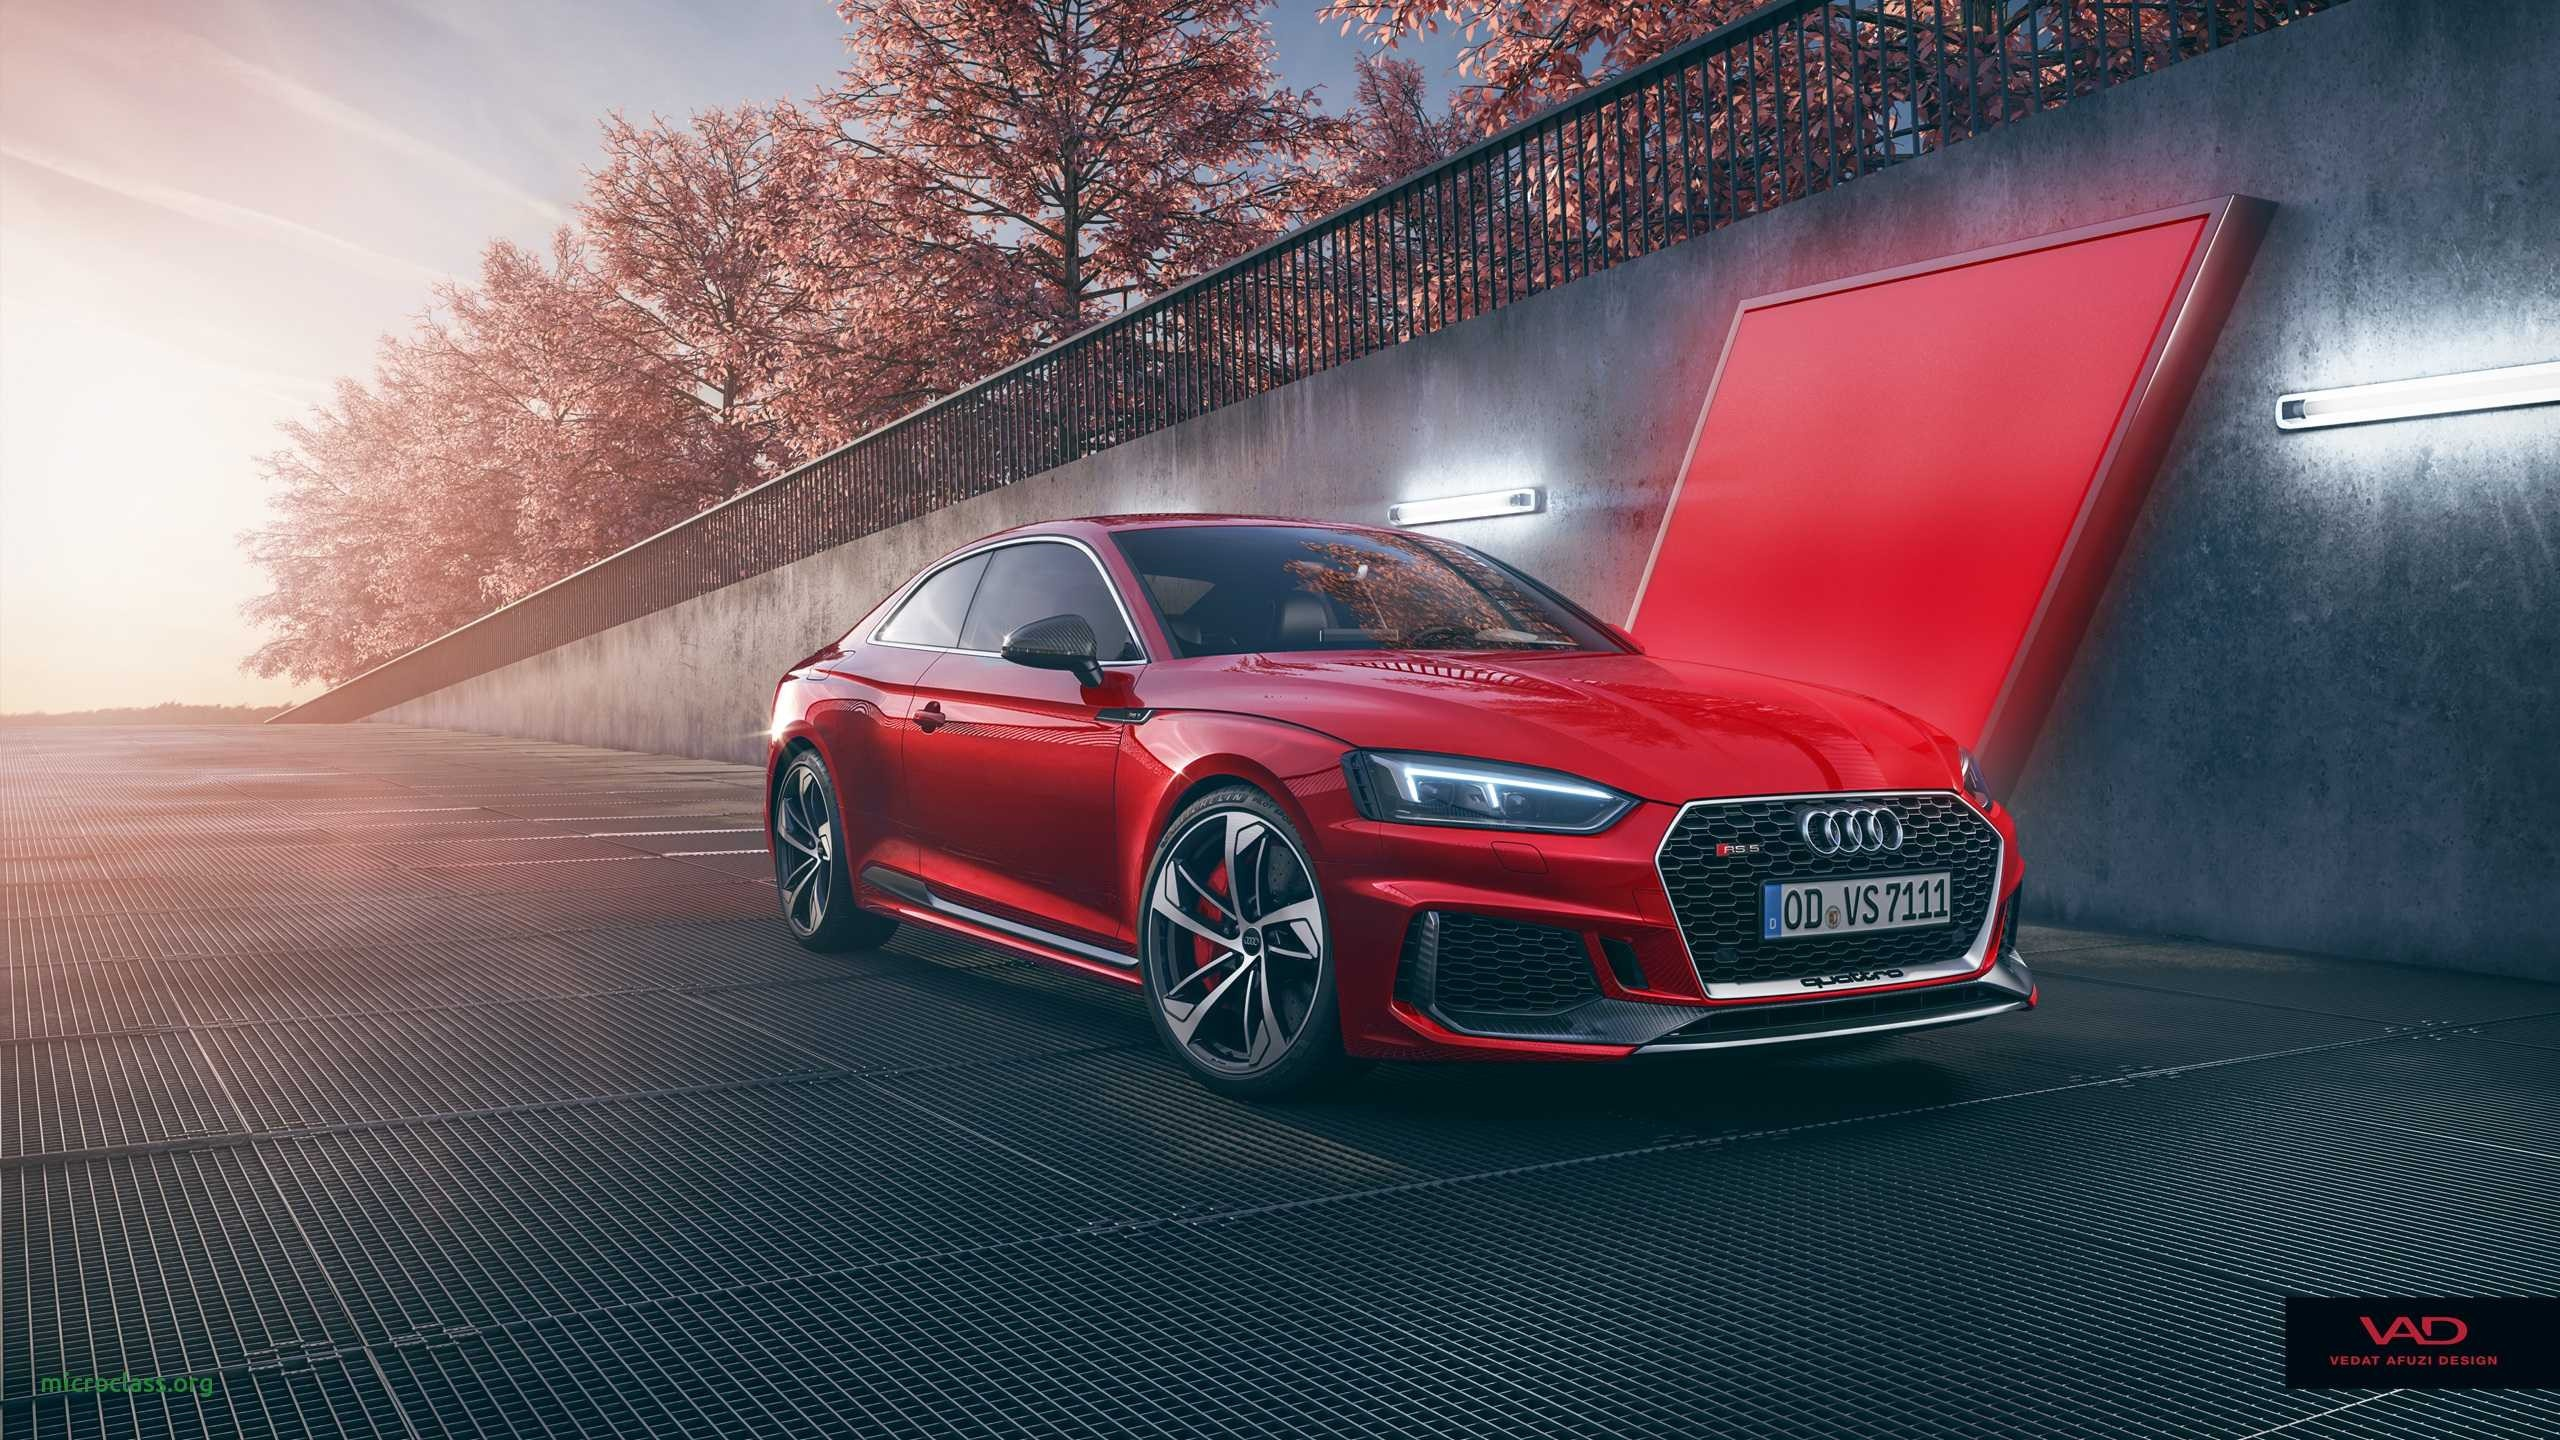 Audi Rs5 Modified Inspirational 2019 Audi Rs5 Cars1 Club-1264 Of Lovely Audi Rs5 Modified